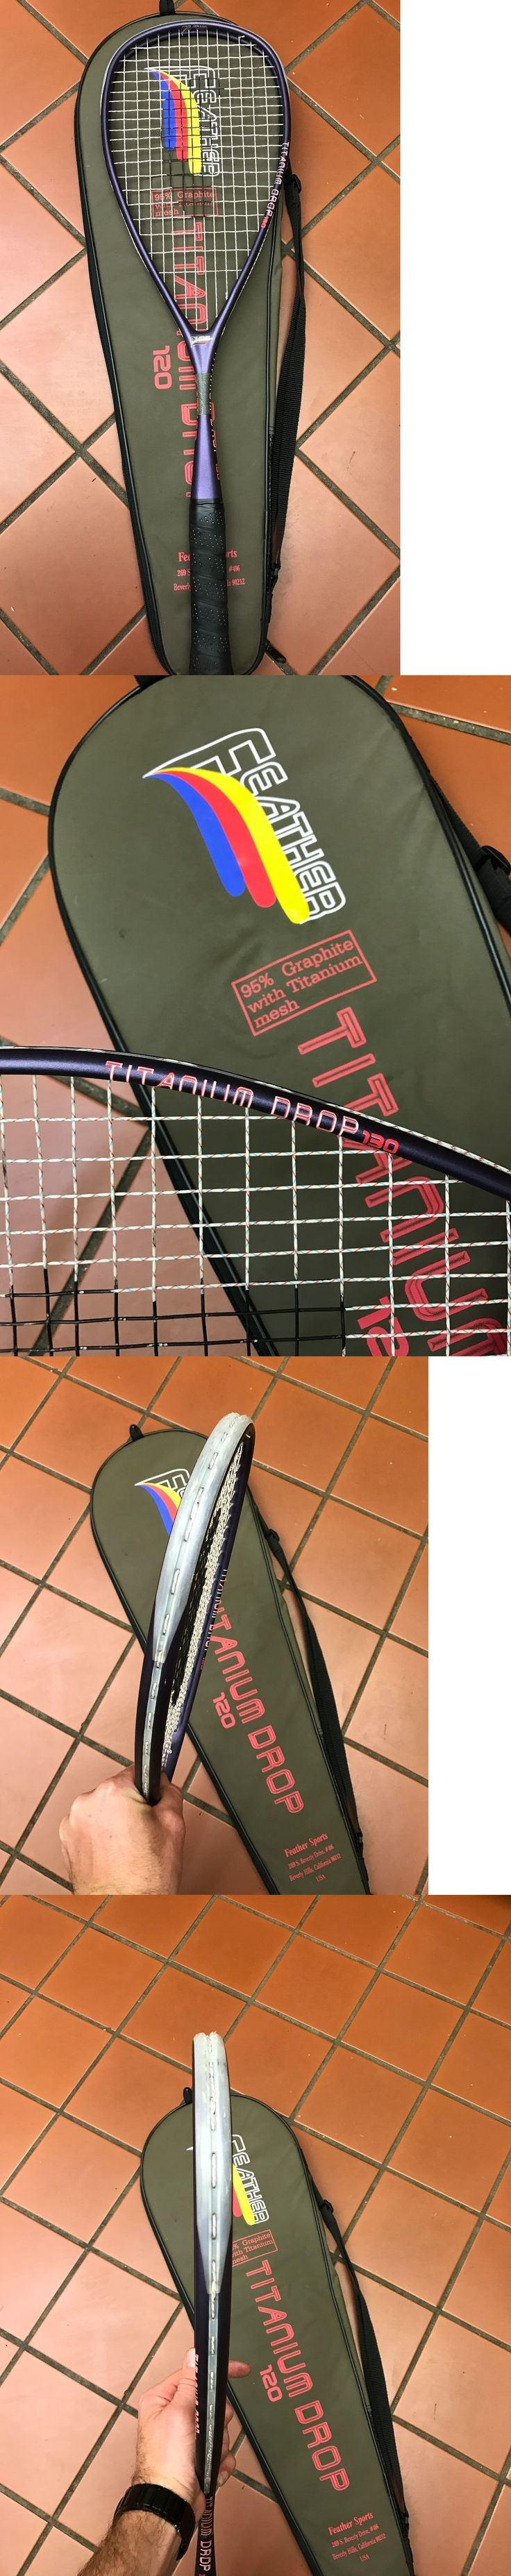 Squash 62166: Feather Titanium Drop 130 Squash Racket Racquet Excellent Cond. W Carrying Case -> BUY IT NOW ONLY: $69 on eBay!